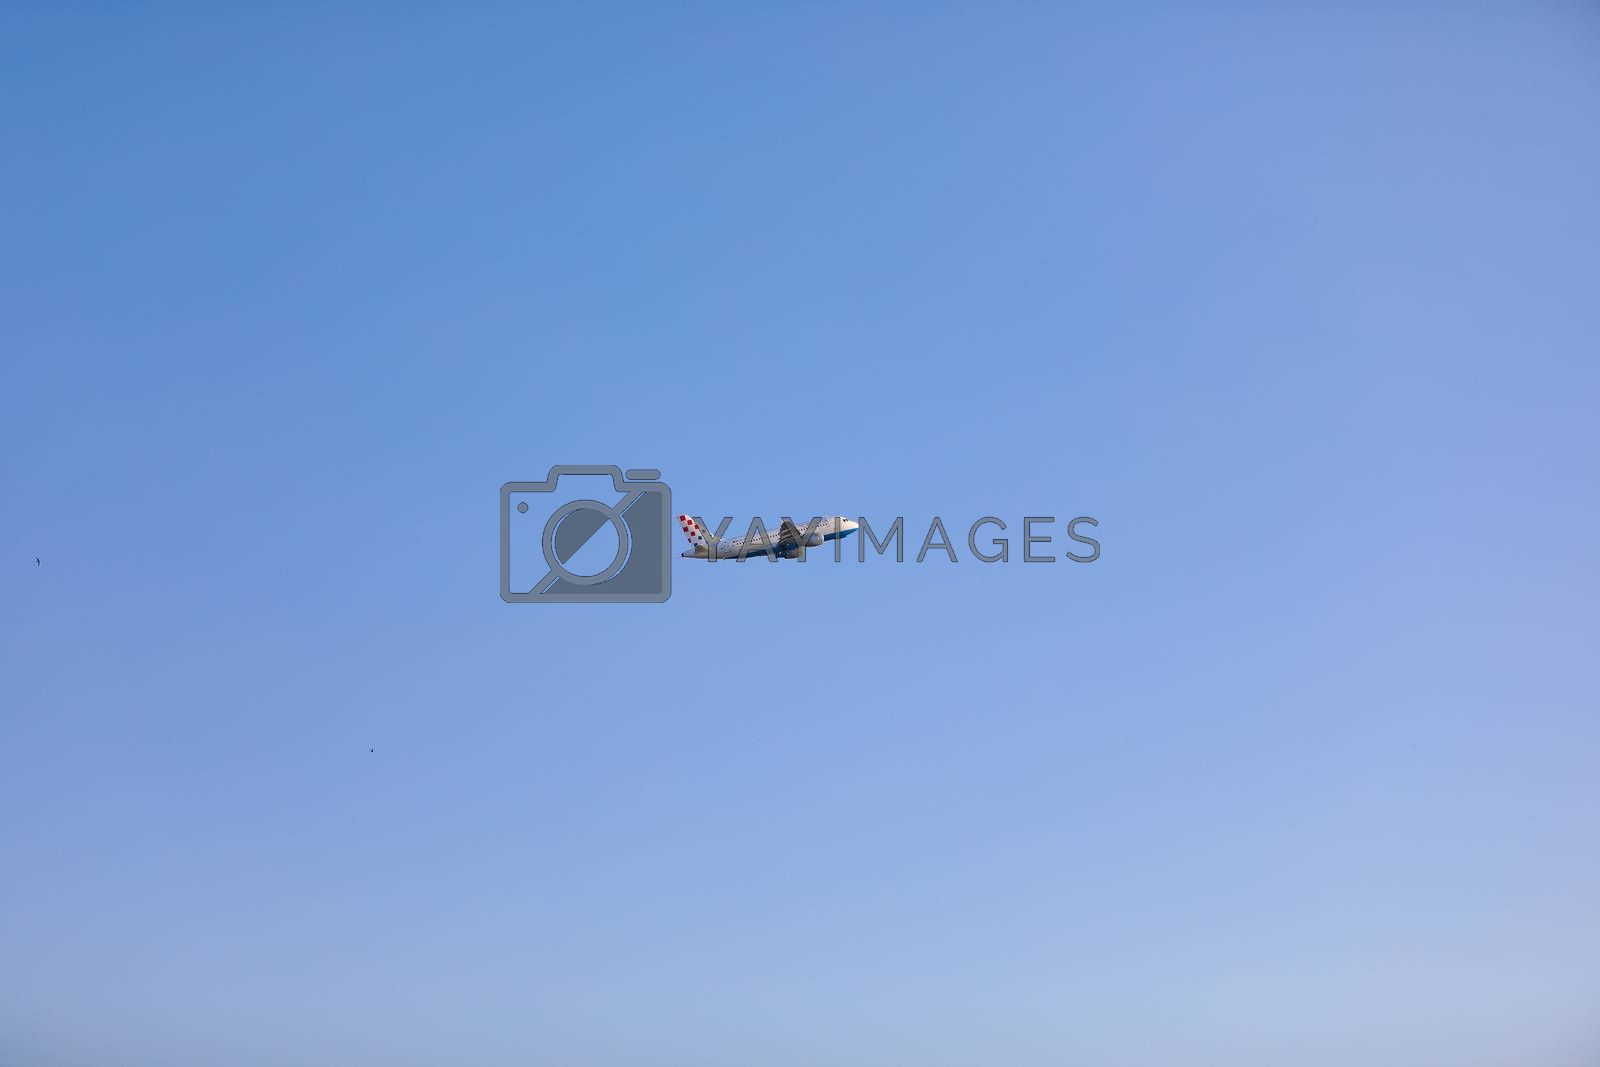 Low-level flying aircraft was caught with Canon camera